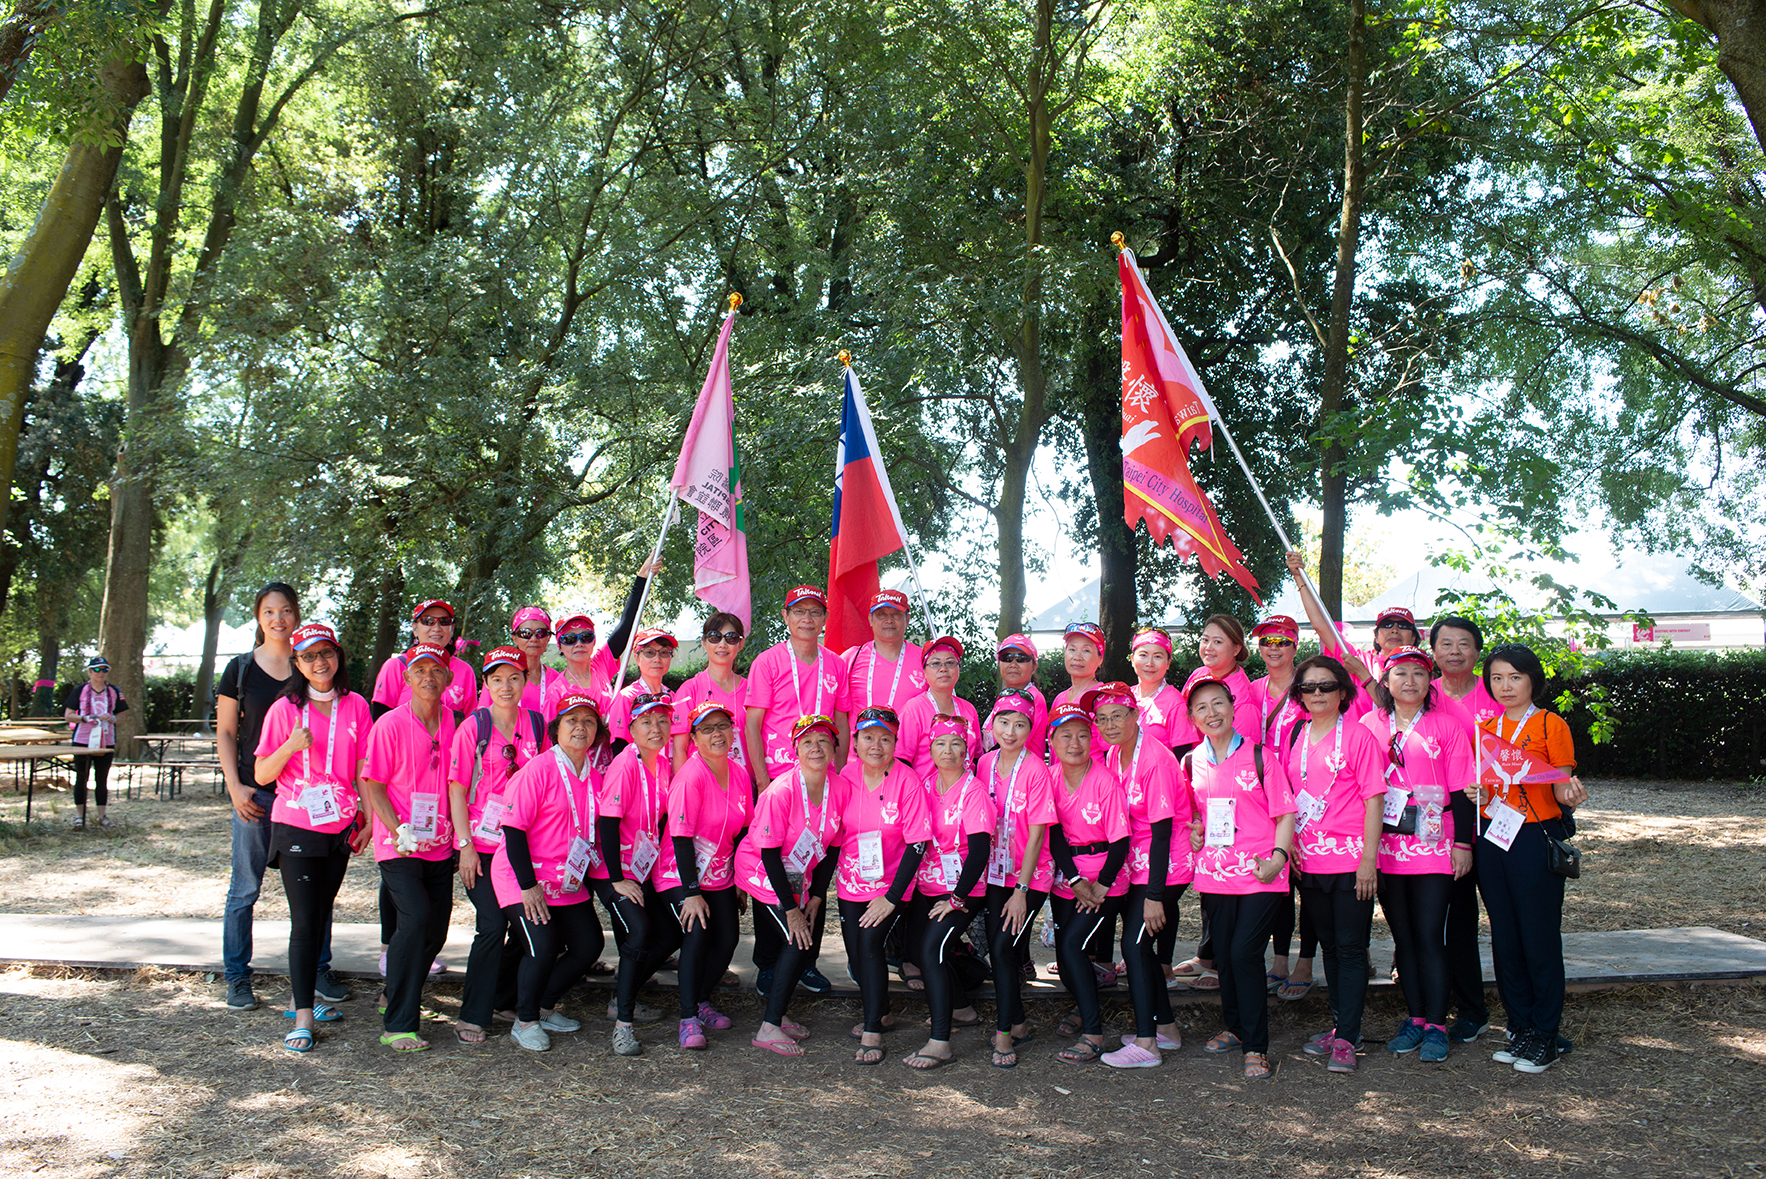 Hsin Huai dragon Boat Team - Taiwan